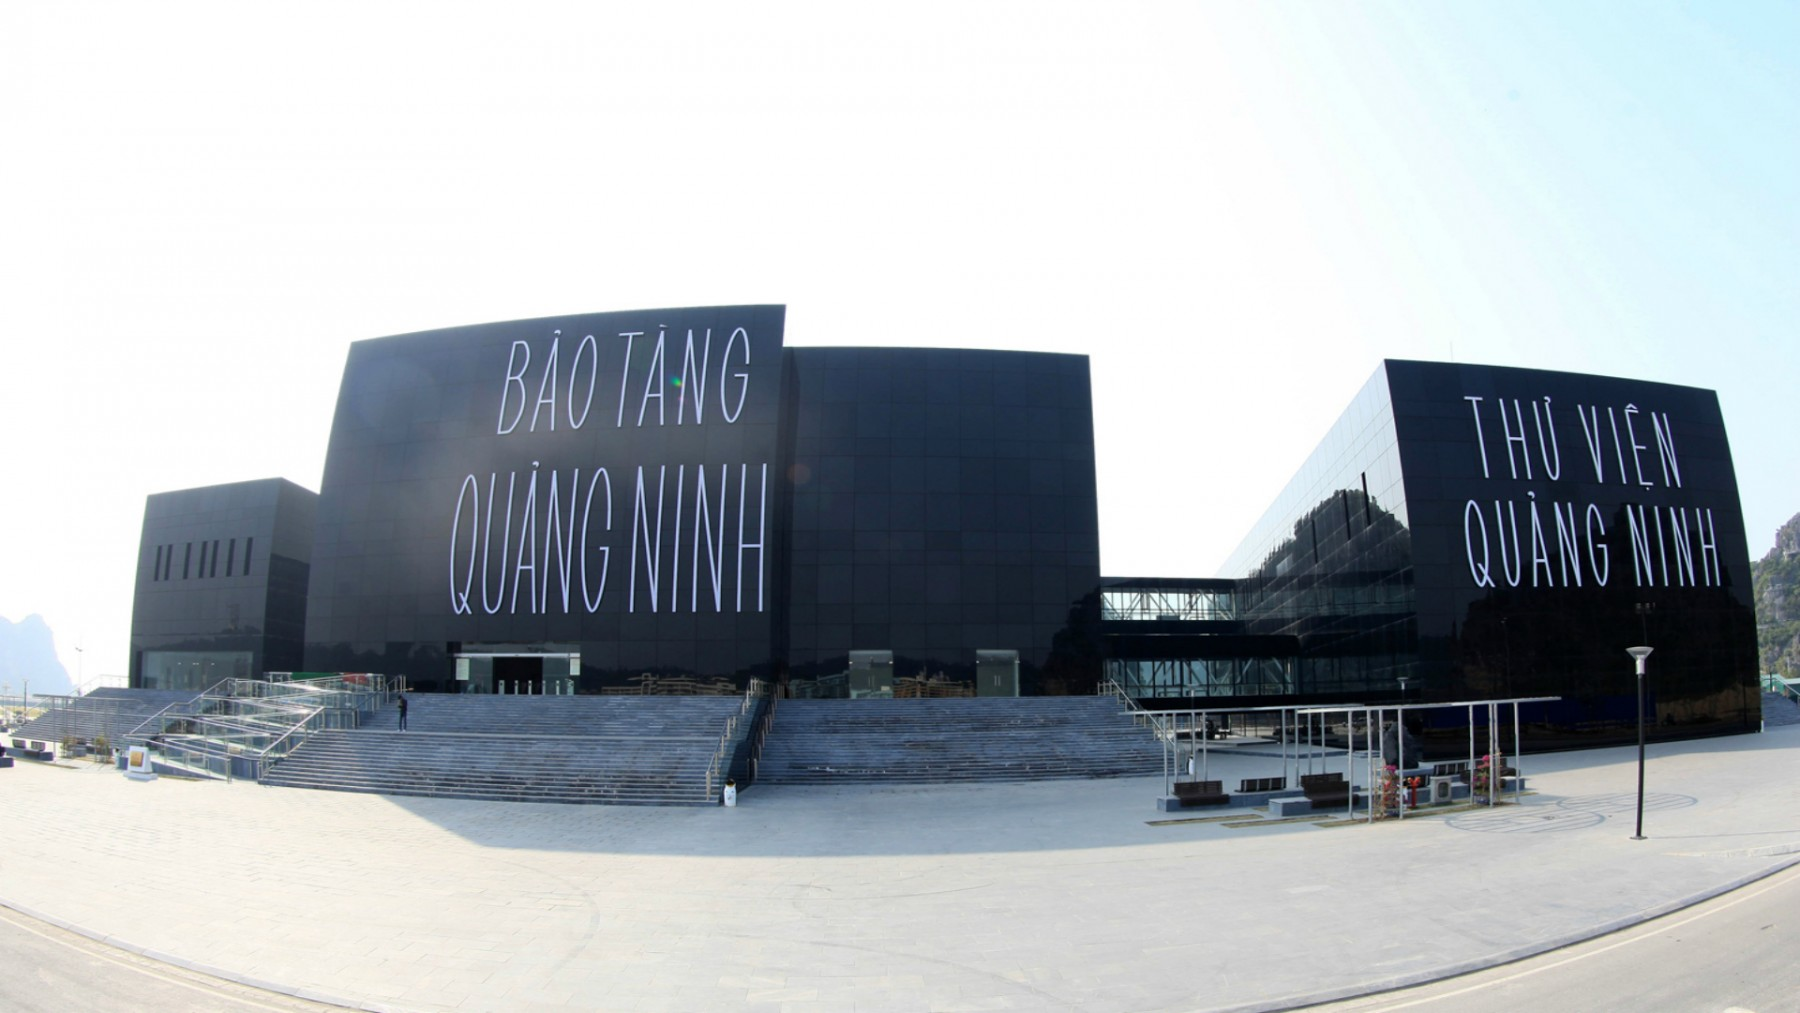 Quang Ninh museum - Top things to do in Halong Bay